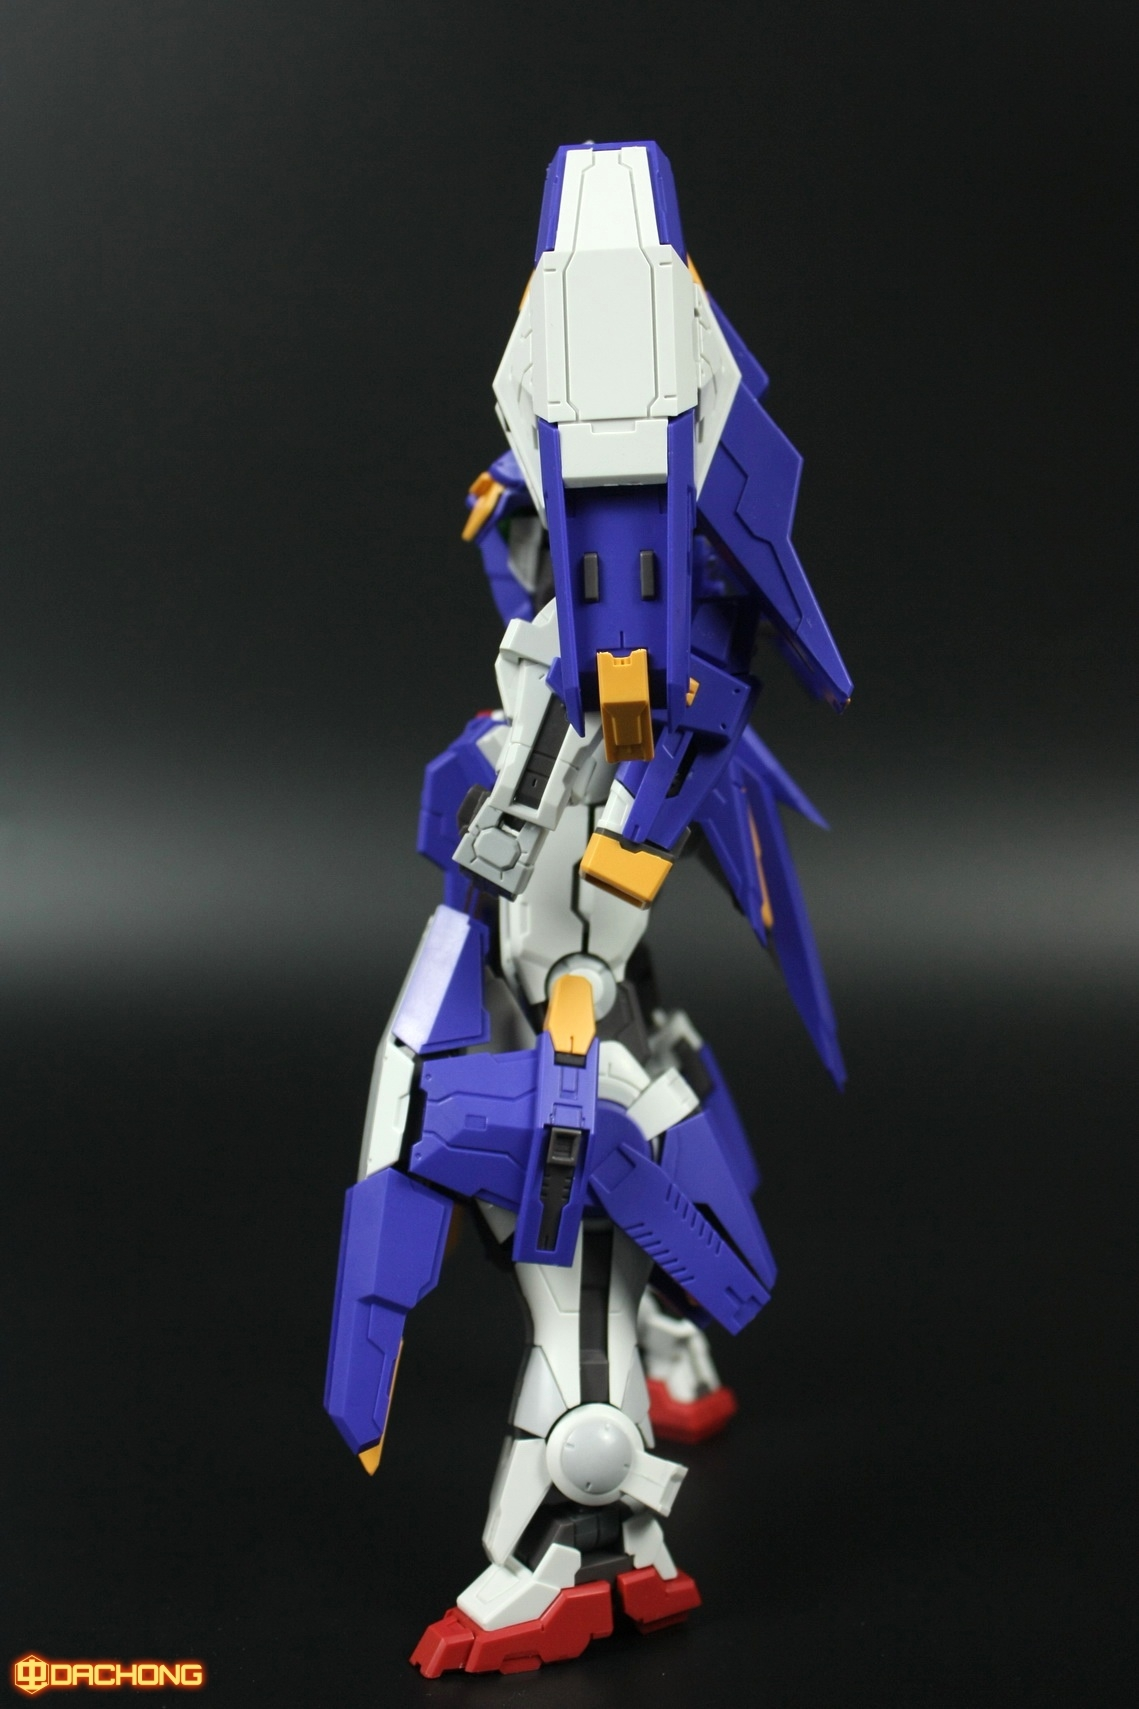 S254_MG_exia_HS_review_inask_065.jpg